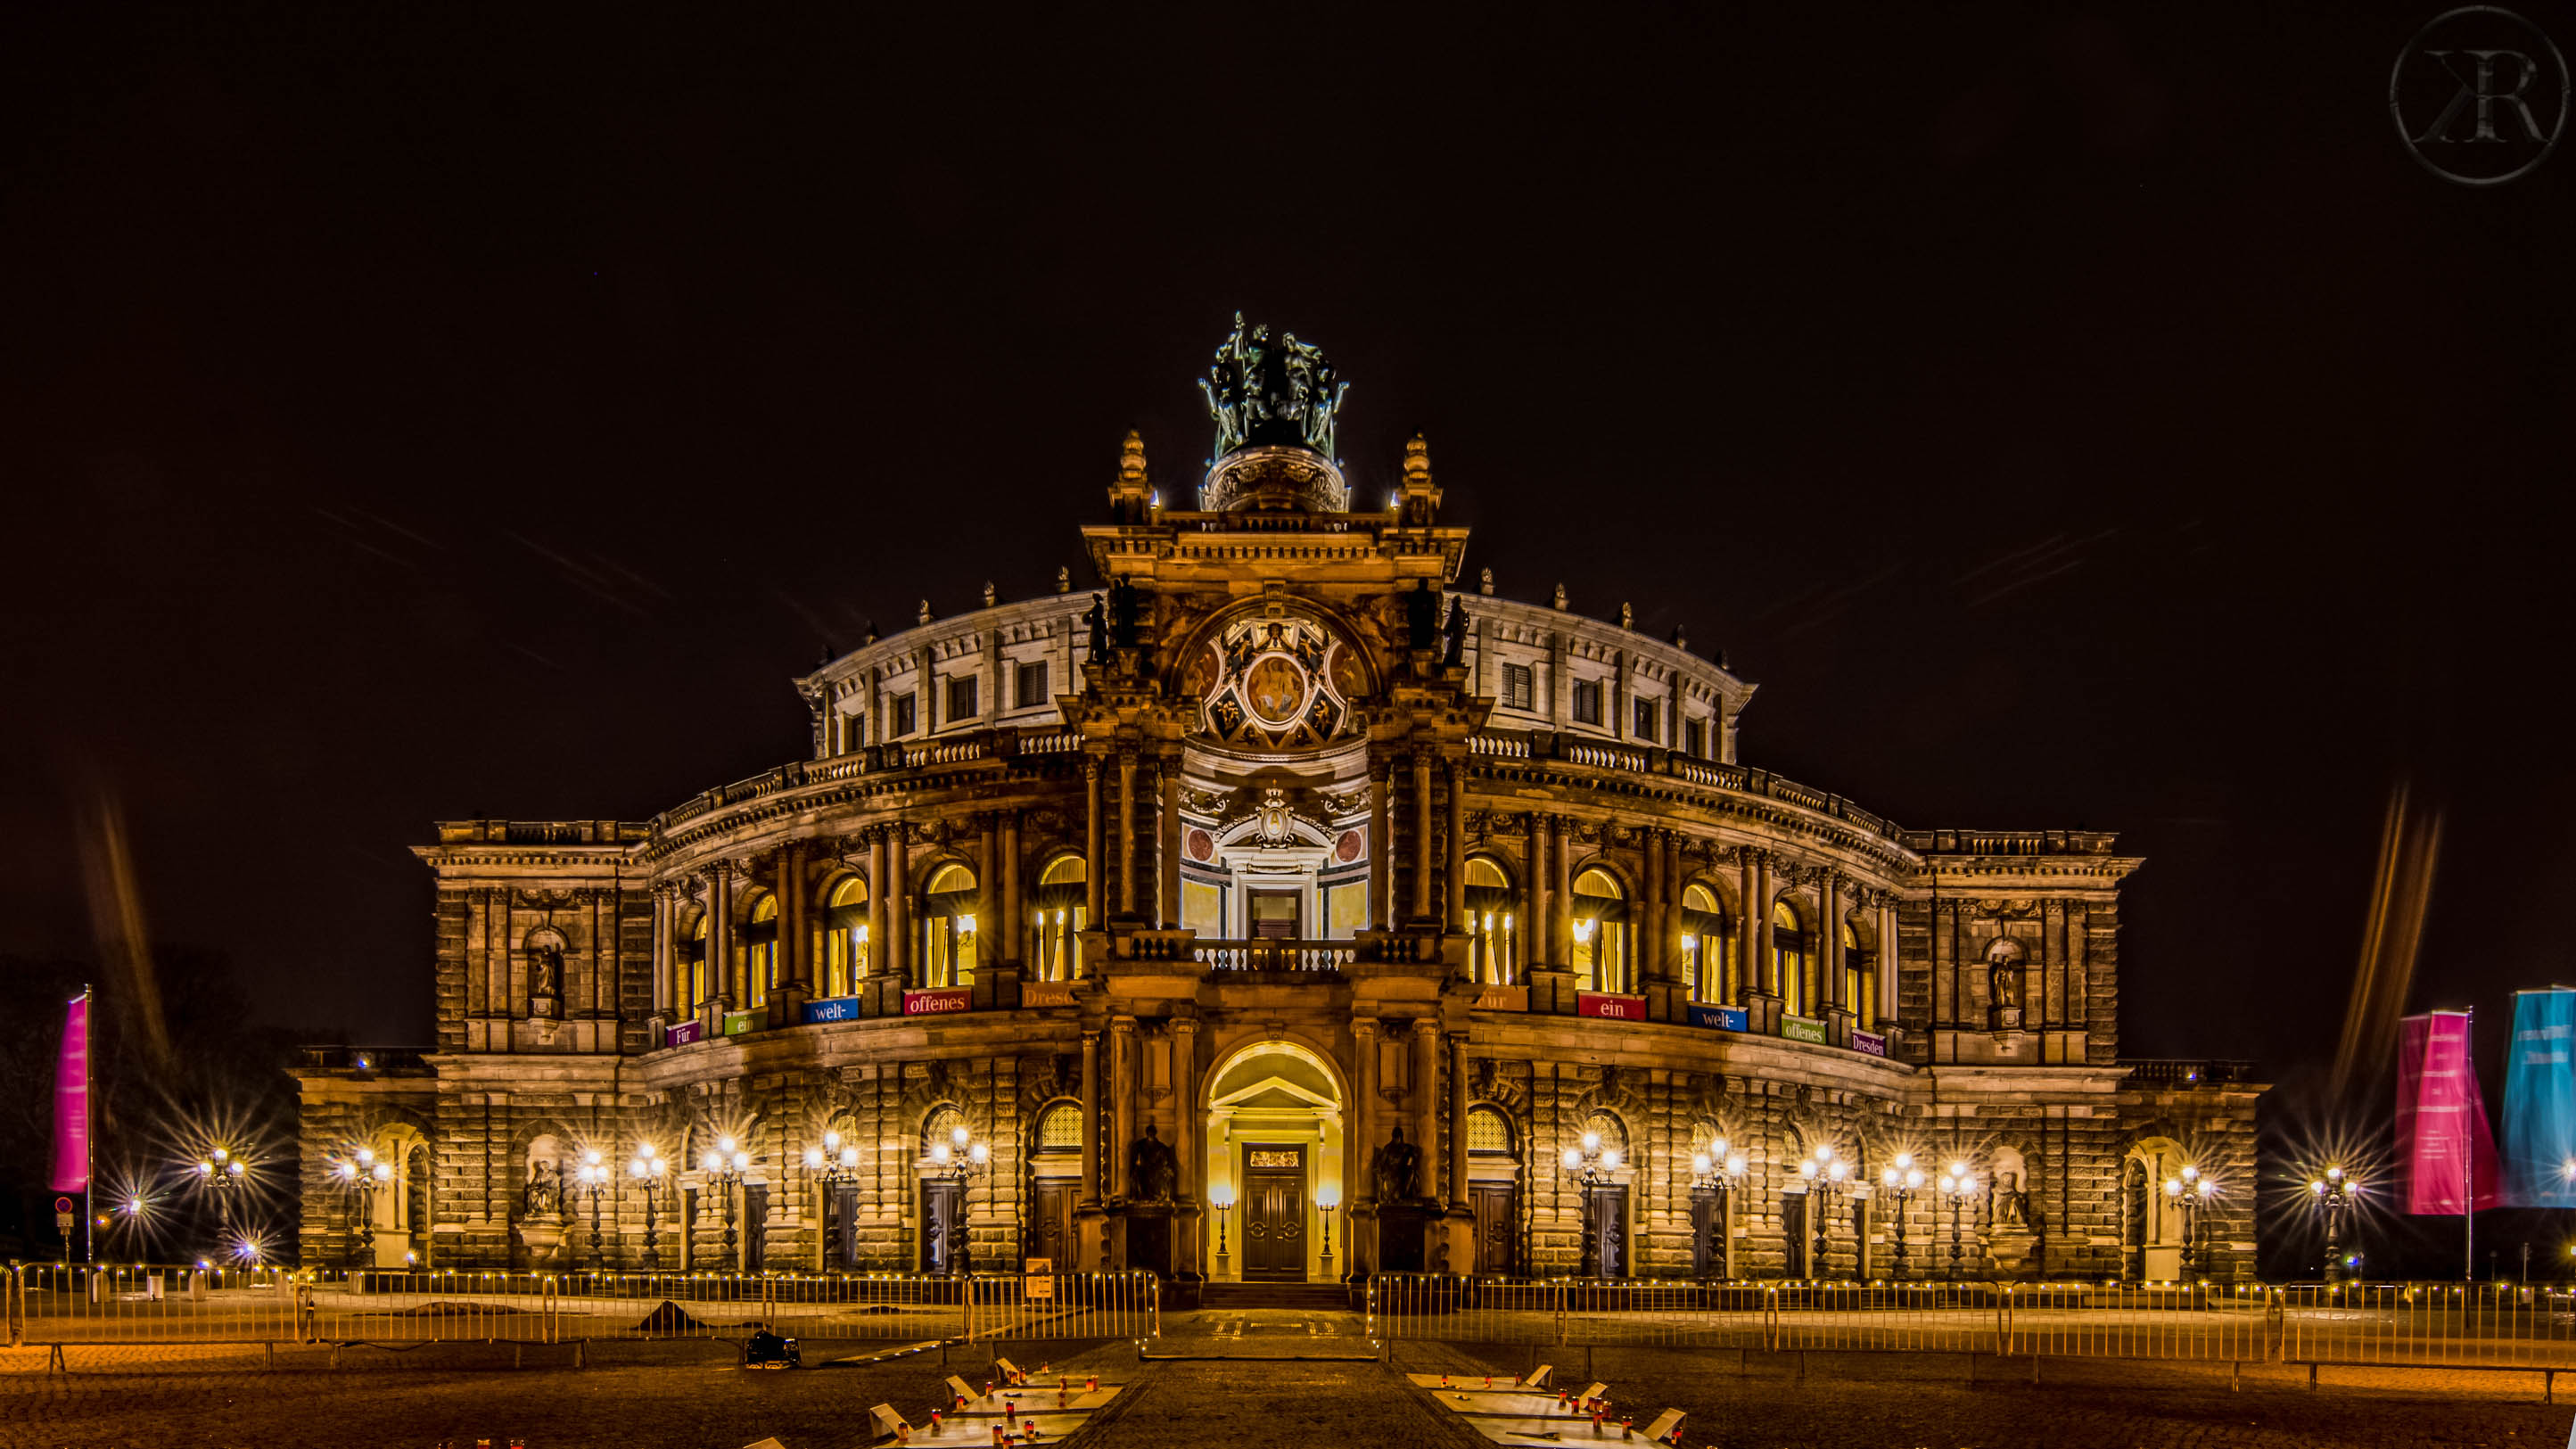 semperoper1_HDR2-2.jpg